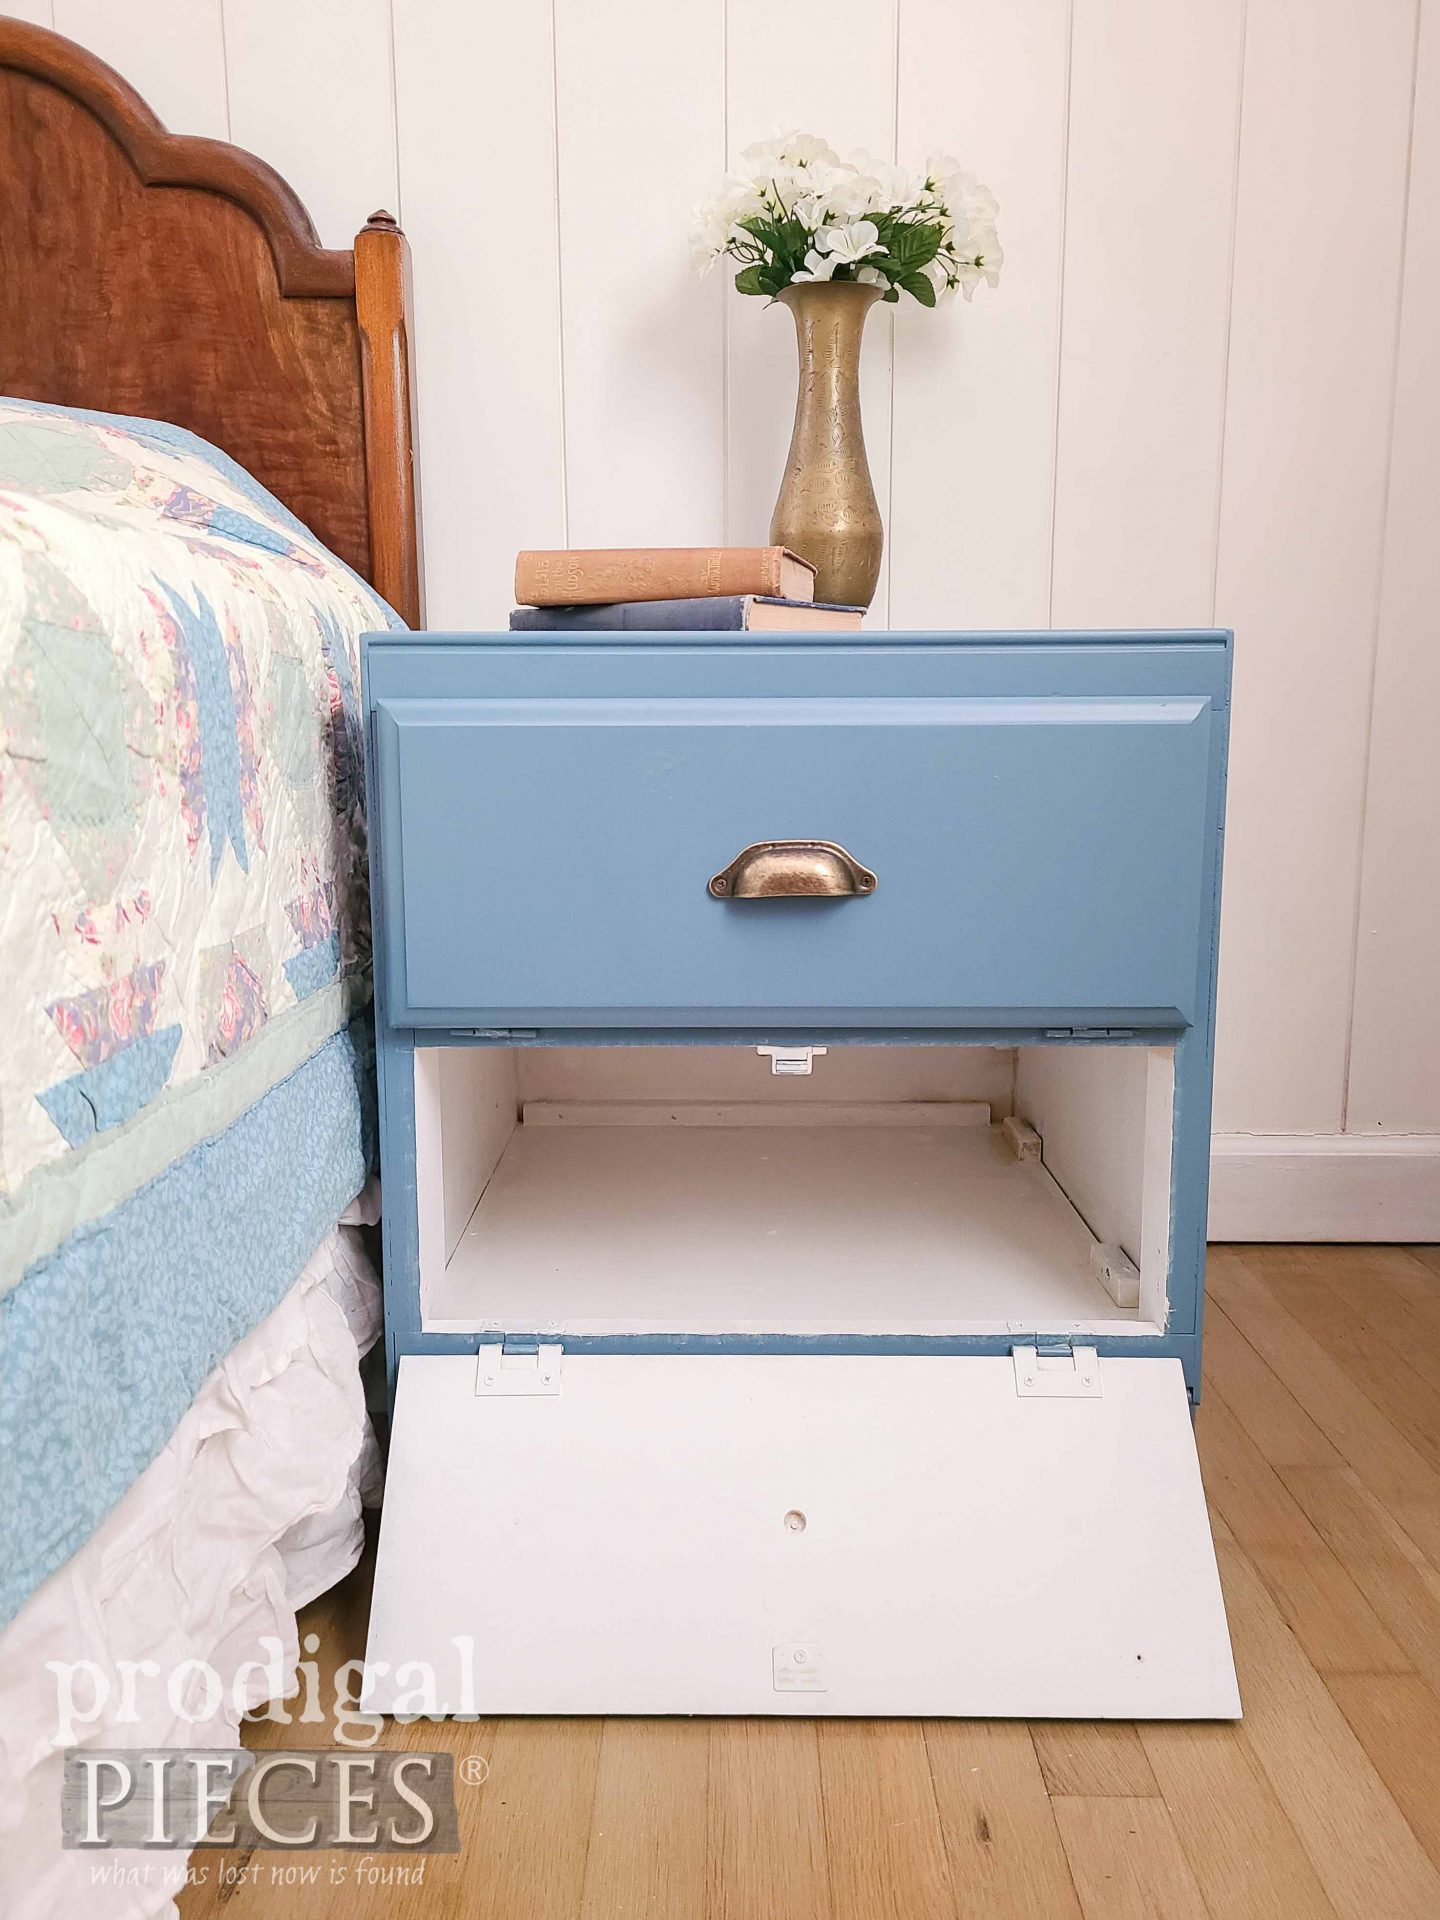 Bottom Open Vintage Cabinet Side Table by Larissa of Prodigal Pieces   prodigalpieces.com #prodigalpieces #furniture #home #diy #homedecor